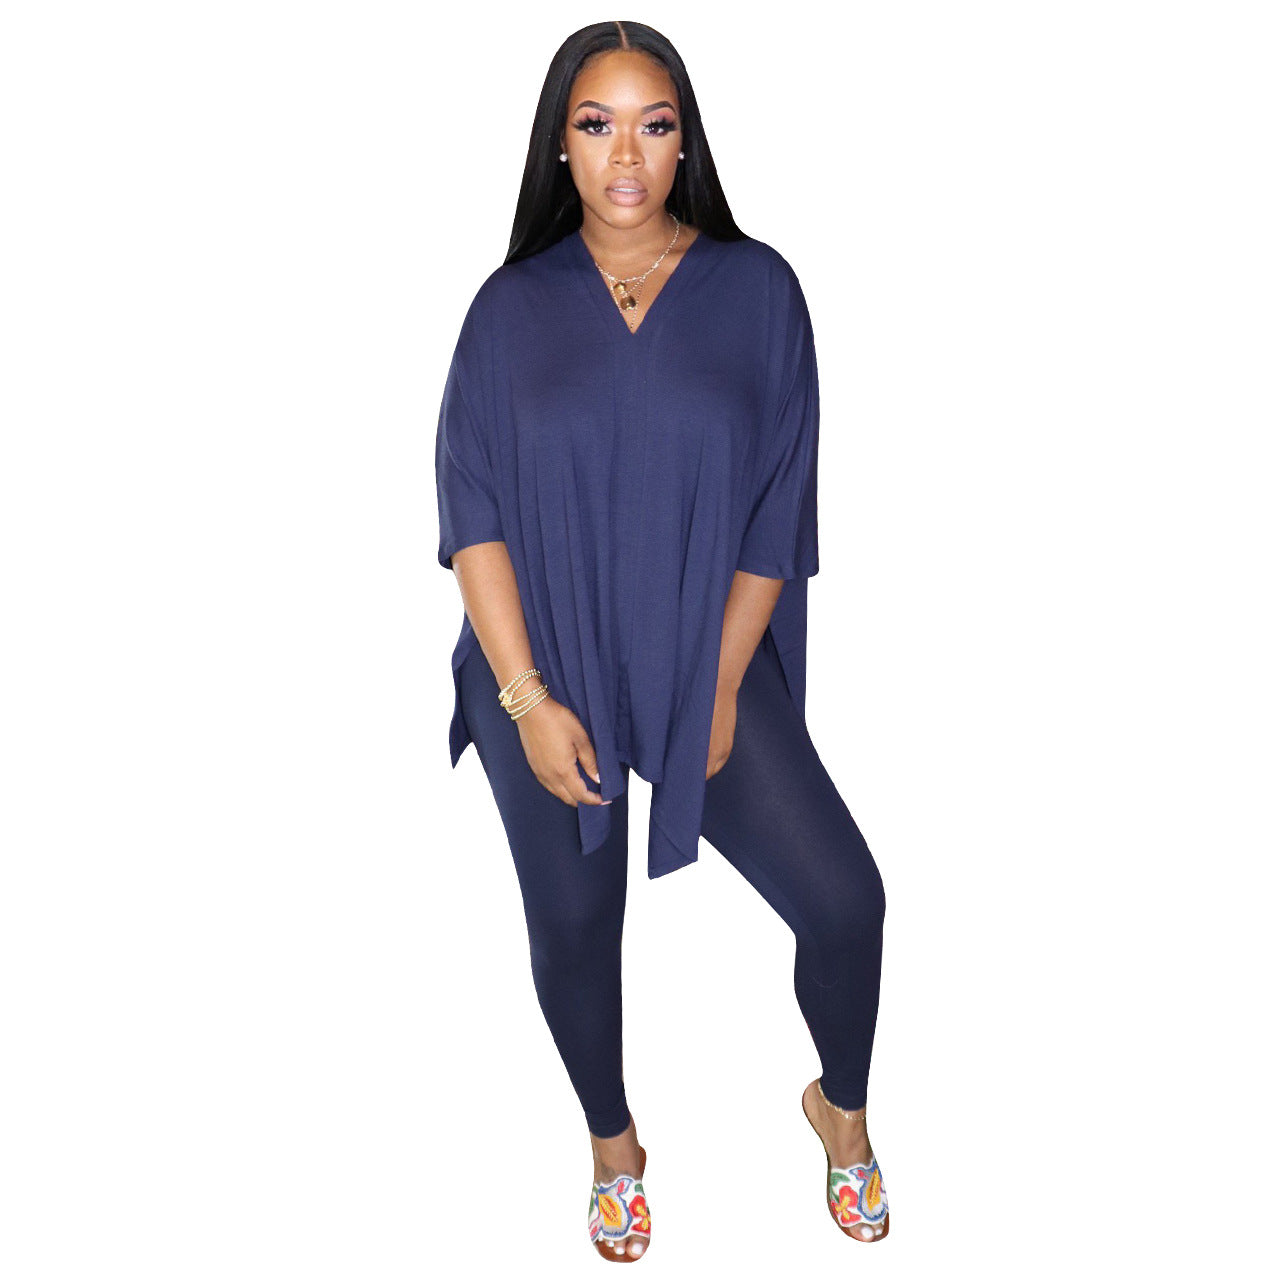 Wide V Neck Top Tight Pant Set